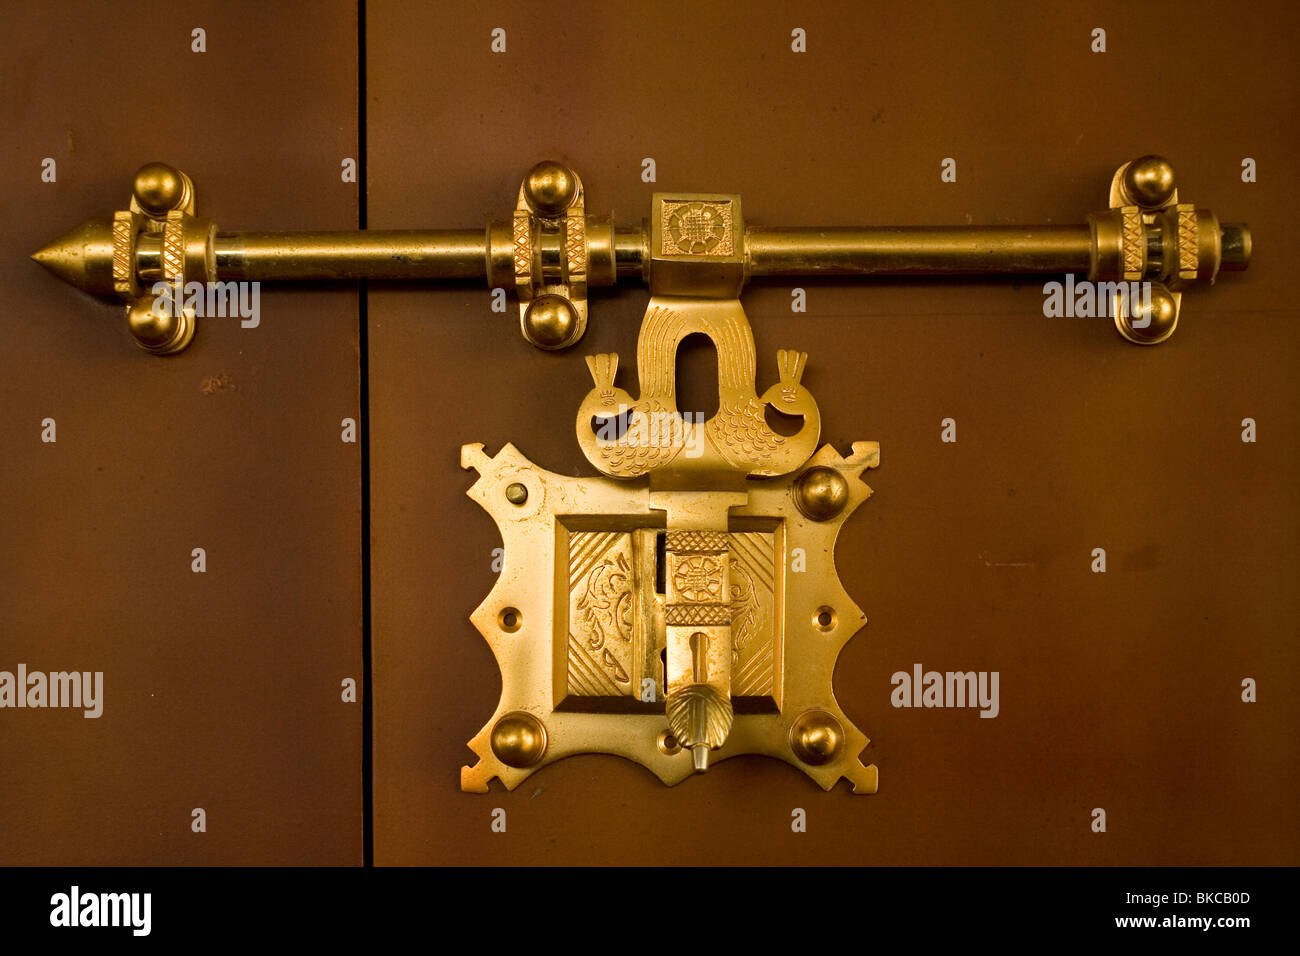 Antique traditional brass door latch and lock on wooden doors common in  kerala india locally known as manichithrathazhu - Antique Traditional Brass Door Latch And Lock On Wooden Doors Common